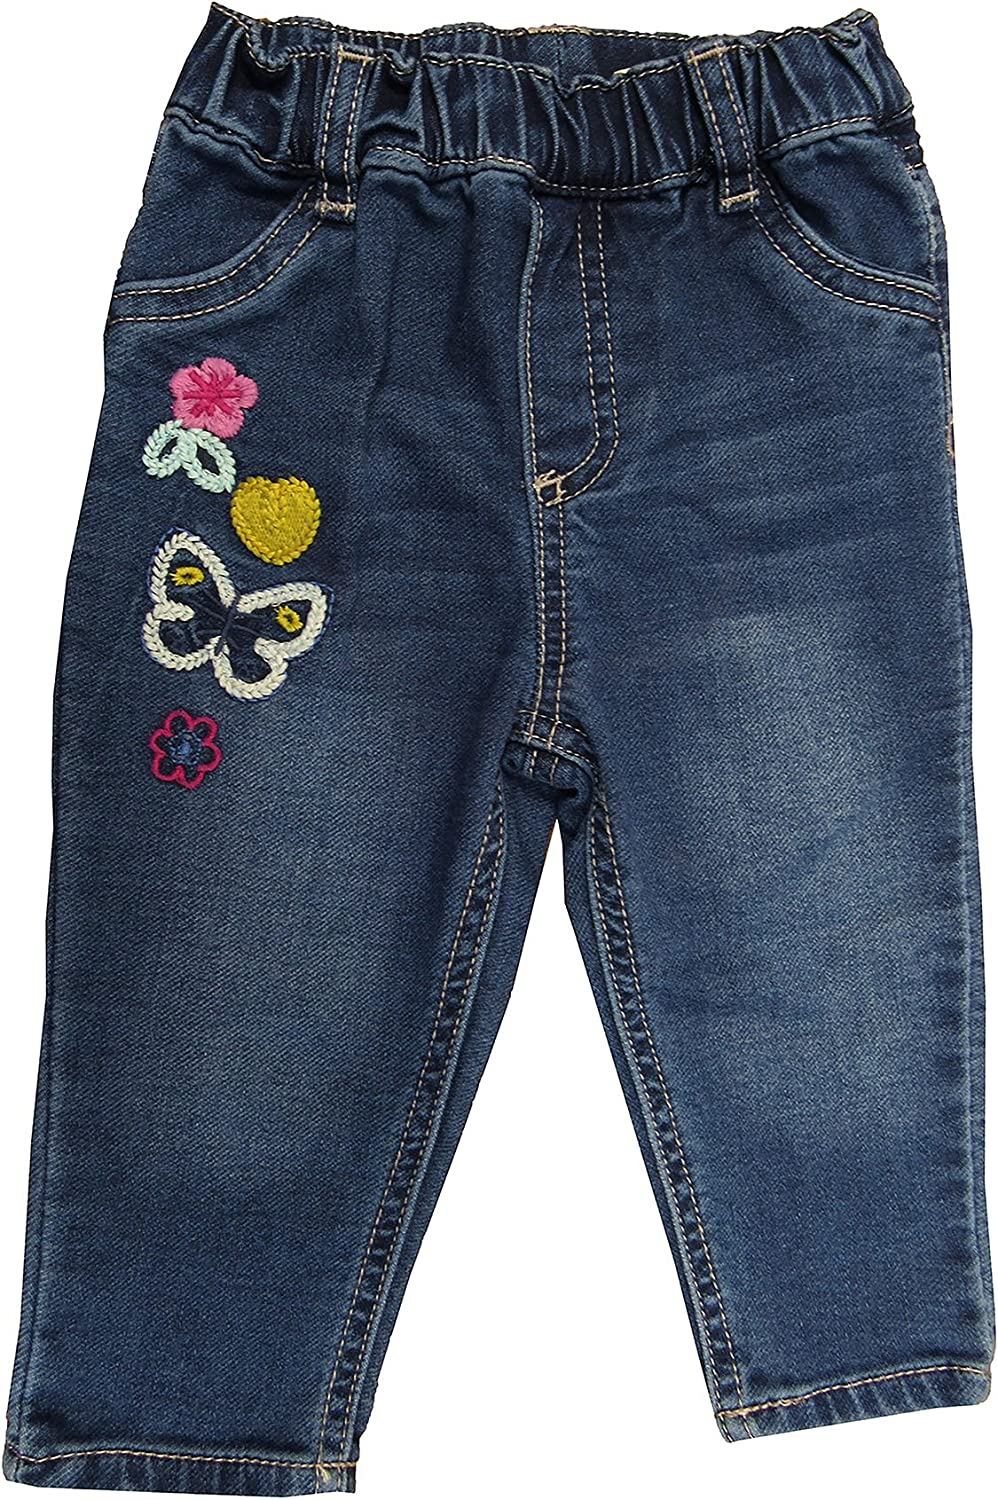 0-24 Months First Impressions Baby Girls Embroidered Patches Pull-On Jeans 24 Months